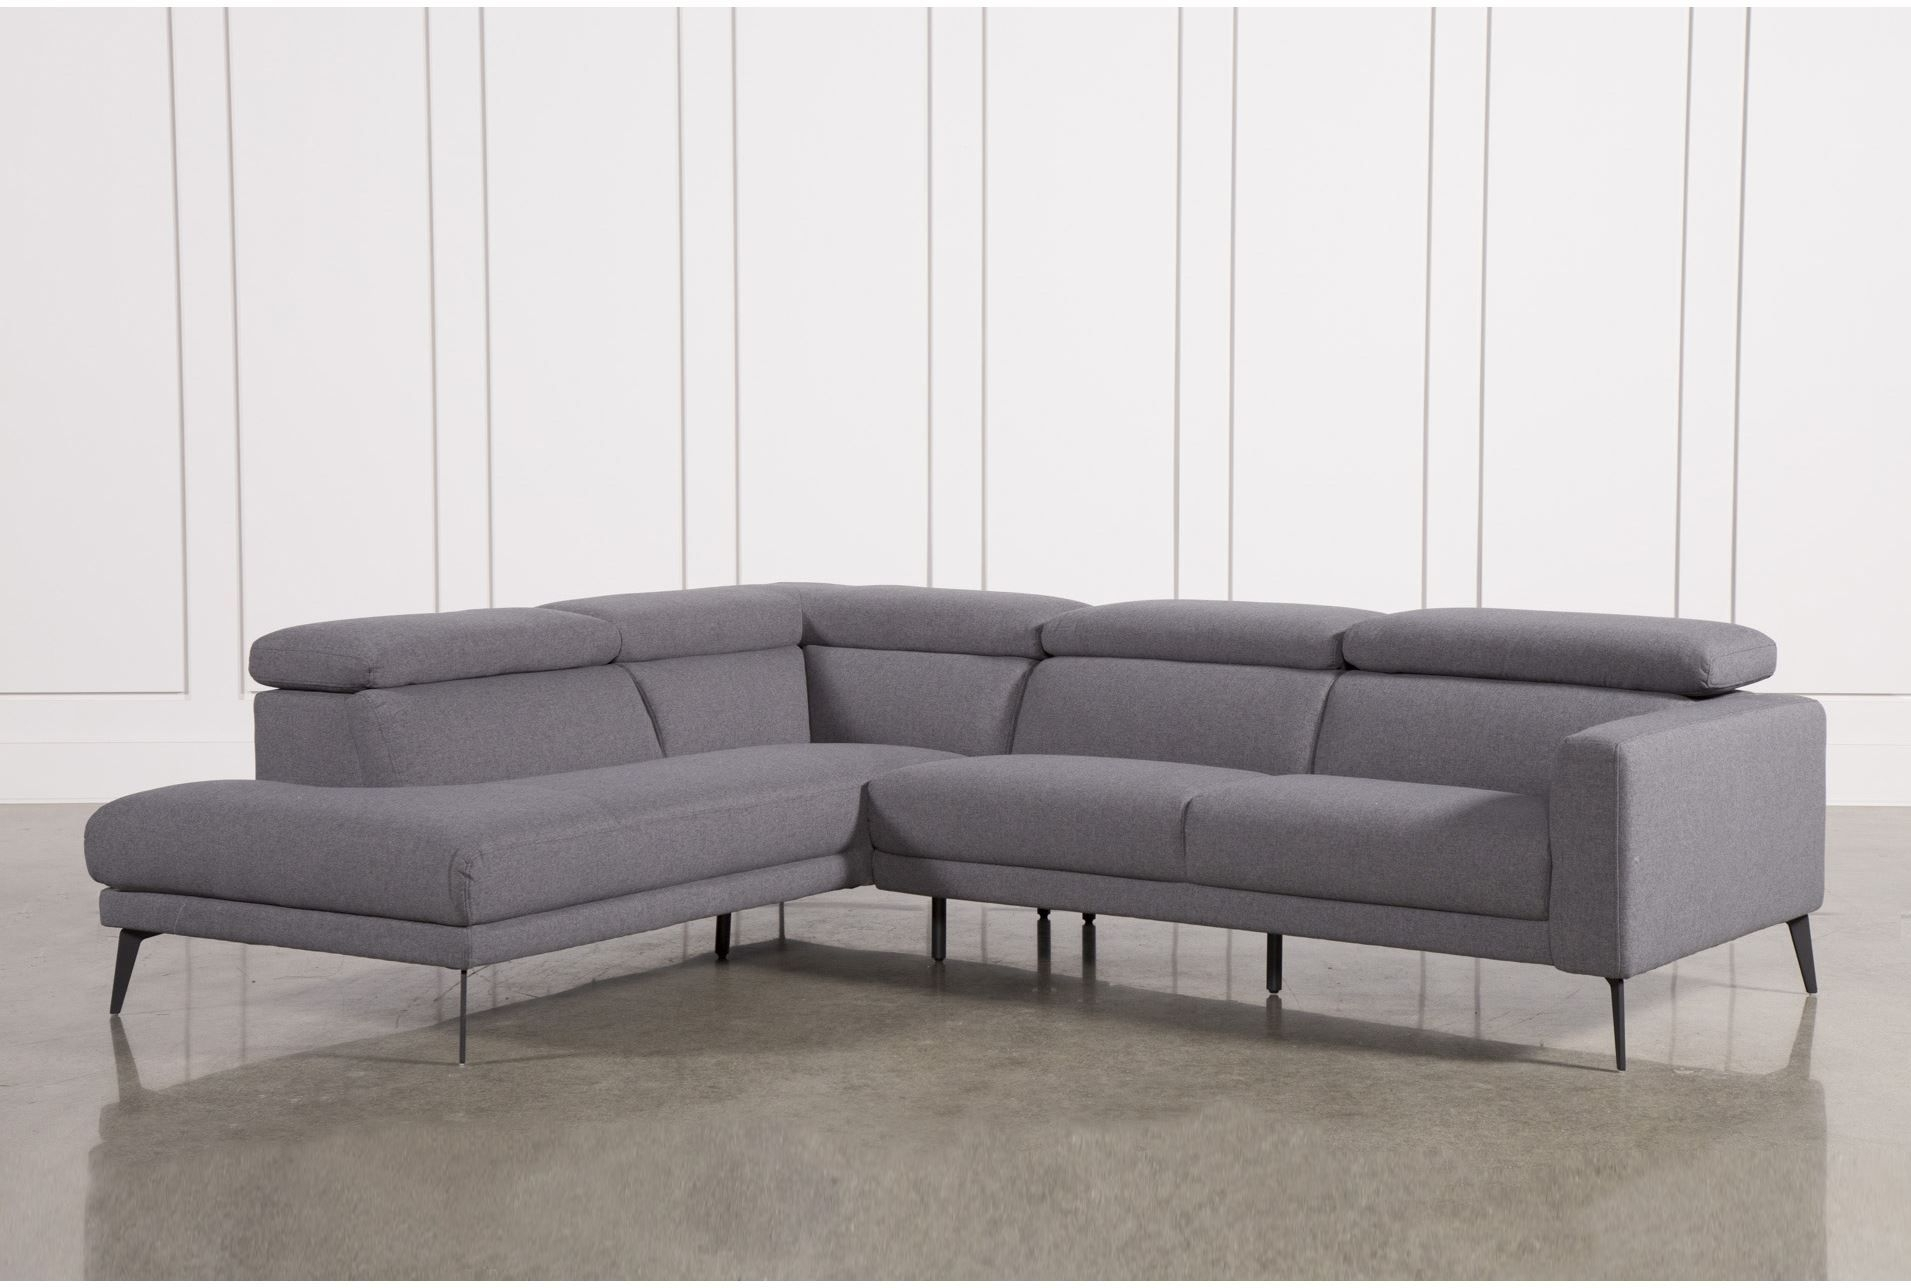 Neo Grey 2 Piece Sectional W/laf Chaise | Couches | Pinterest Inside Tatum Dark Grey 2 Piece Sectionals With Raf Chaise (View 6 of 25)